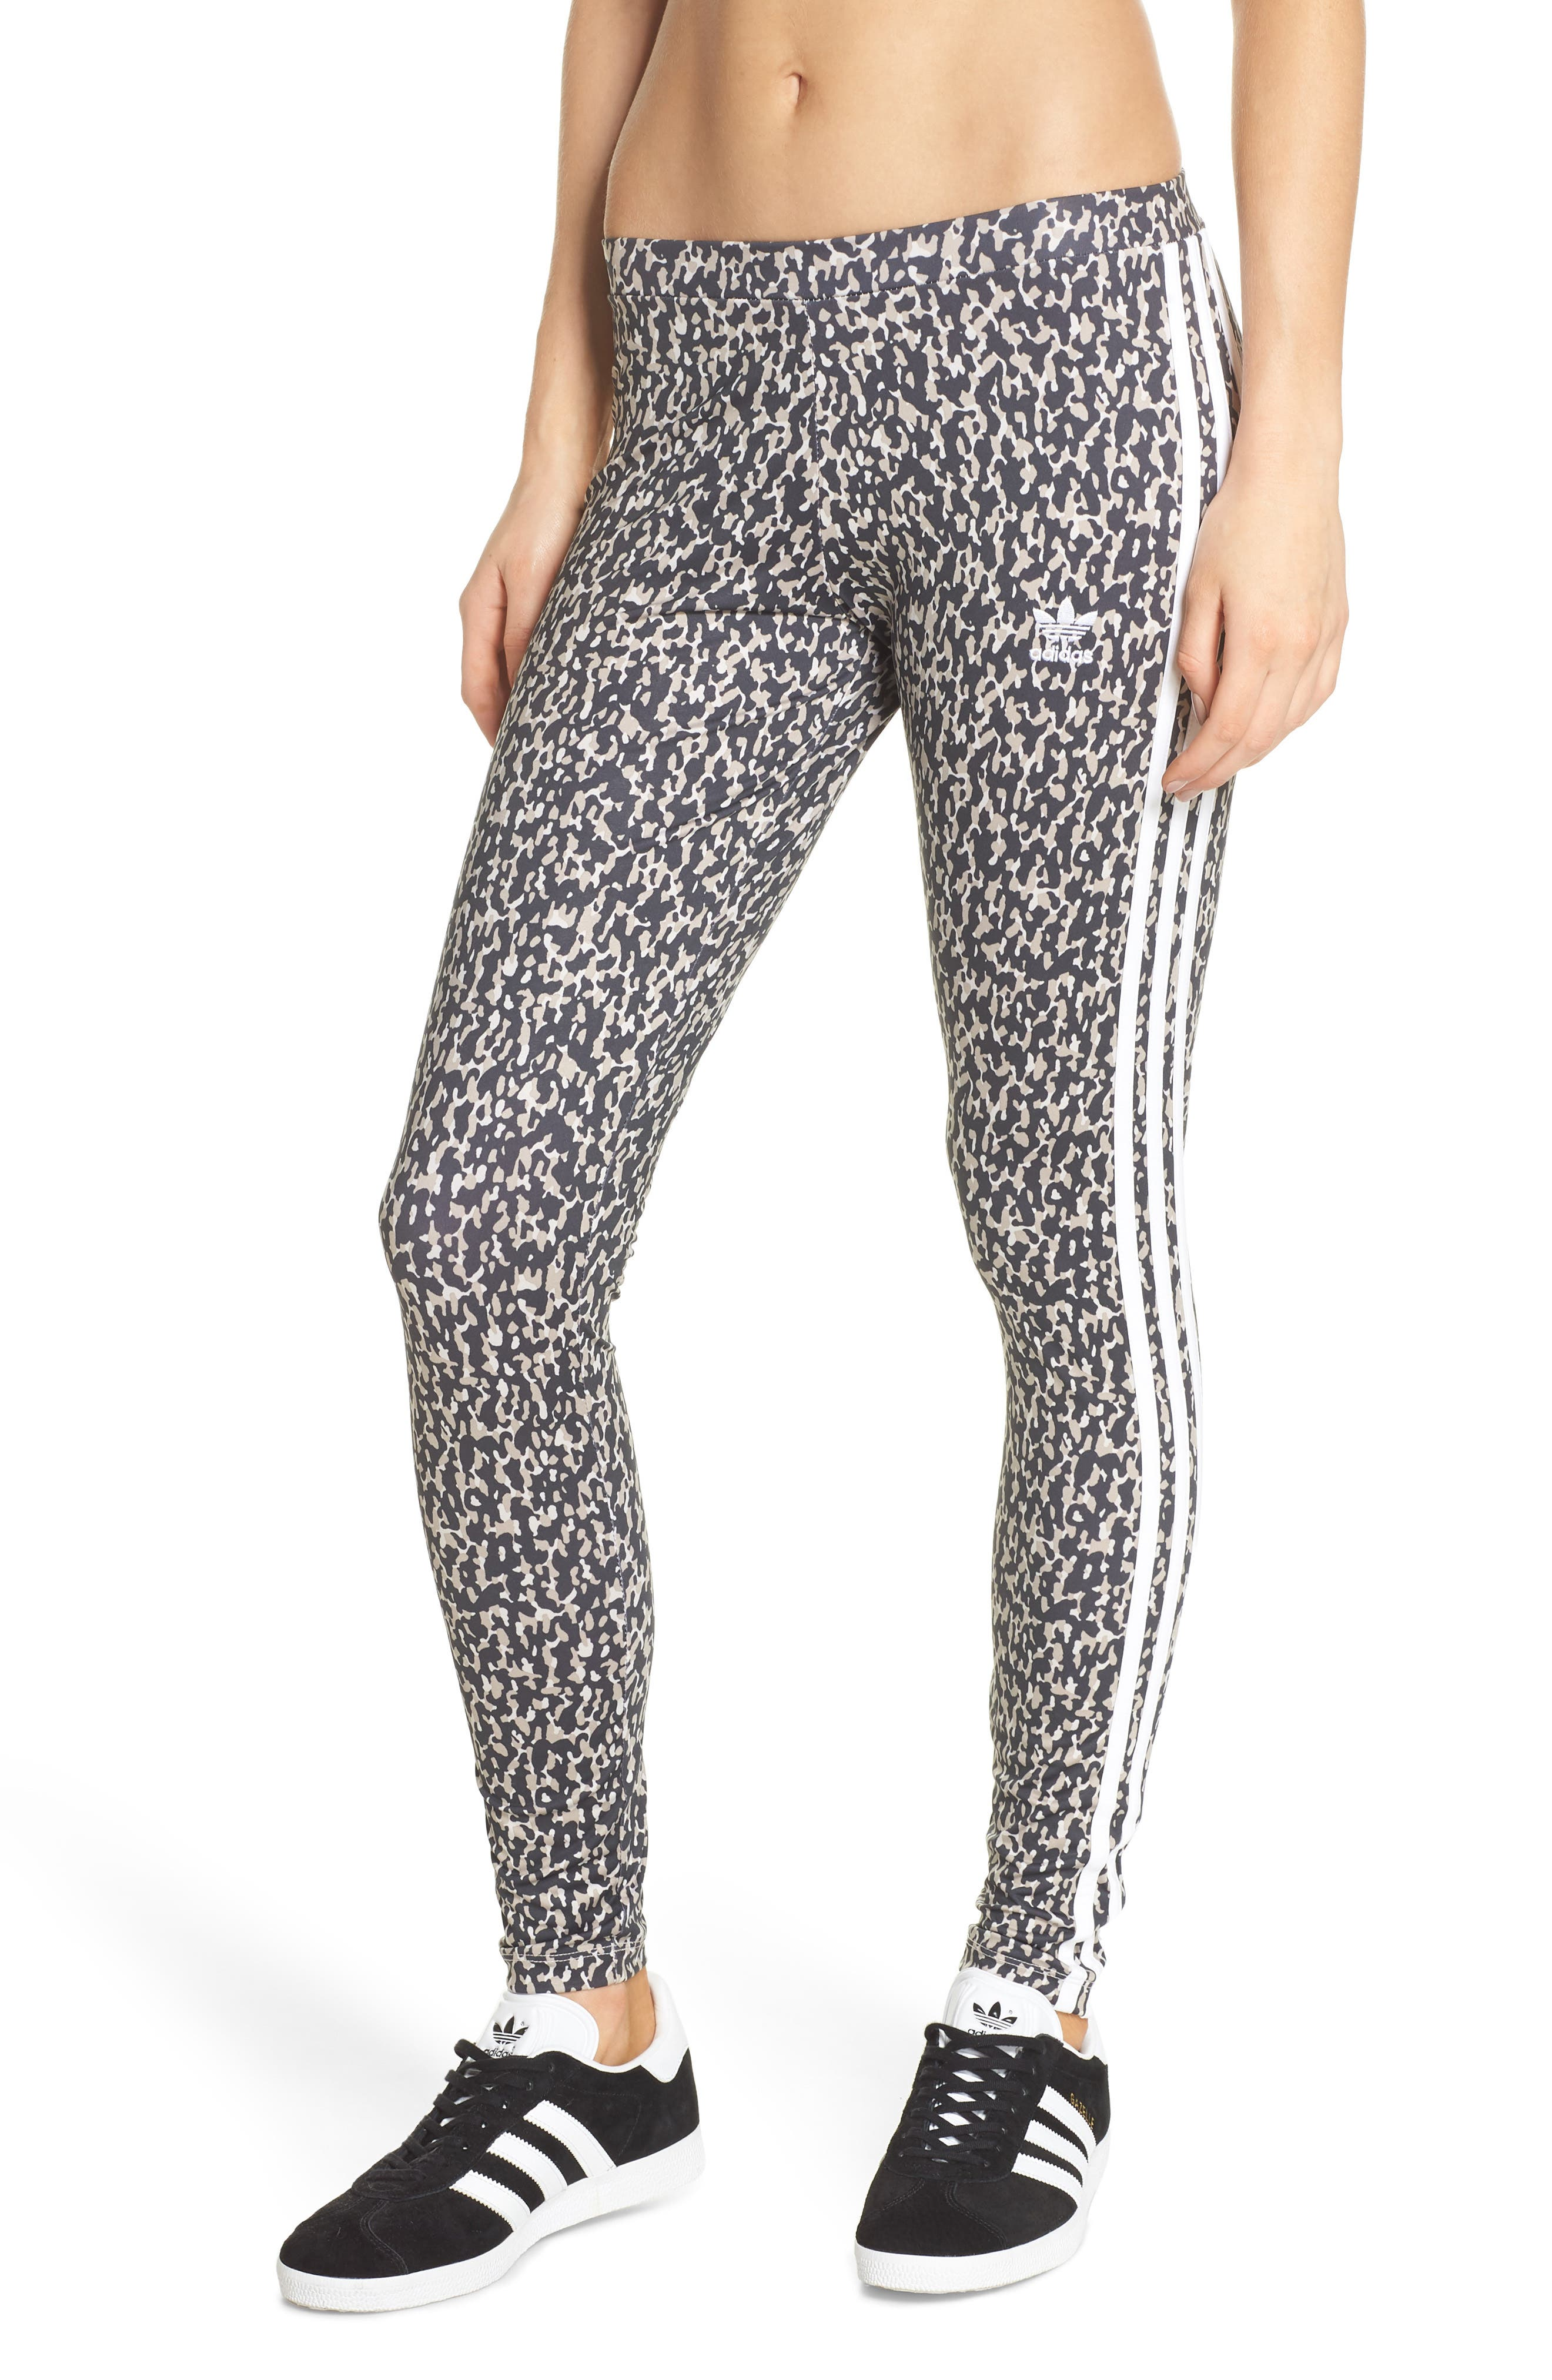 Leopard Camo Leggings,                         Main,                         color, Leoflage Aop